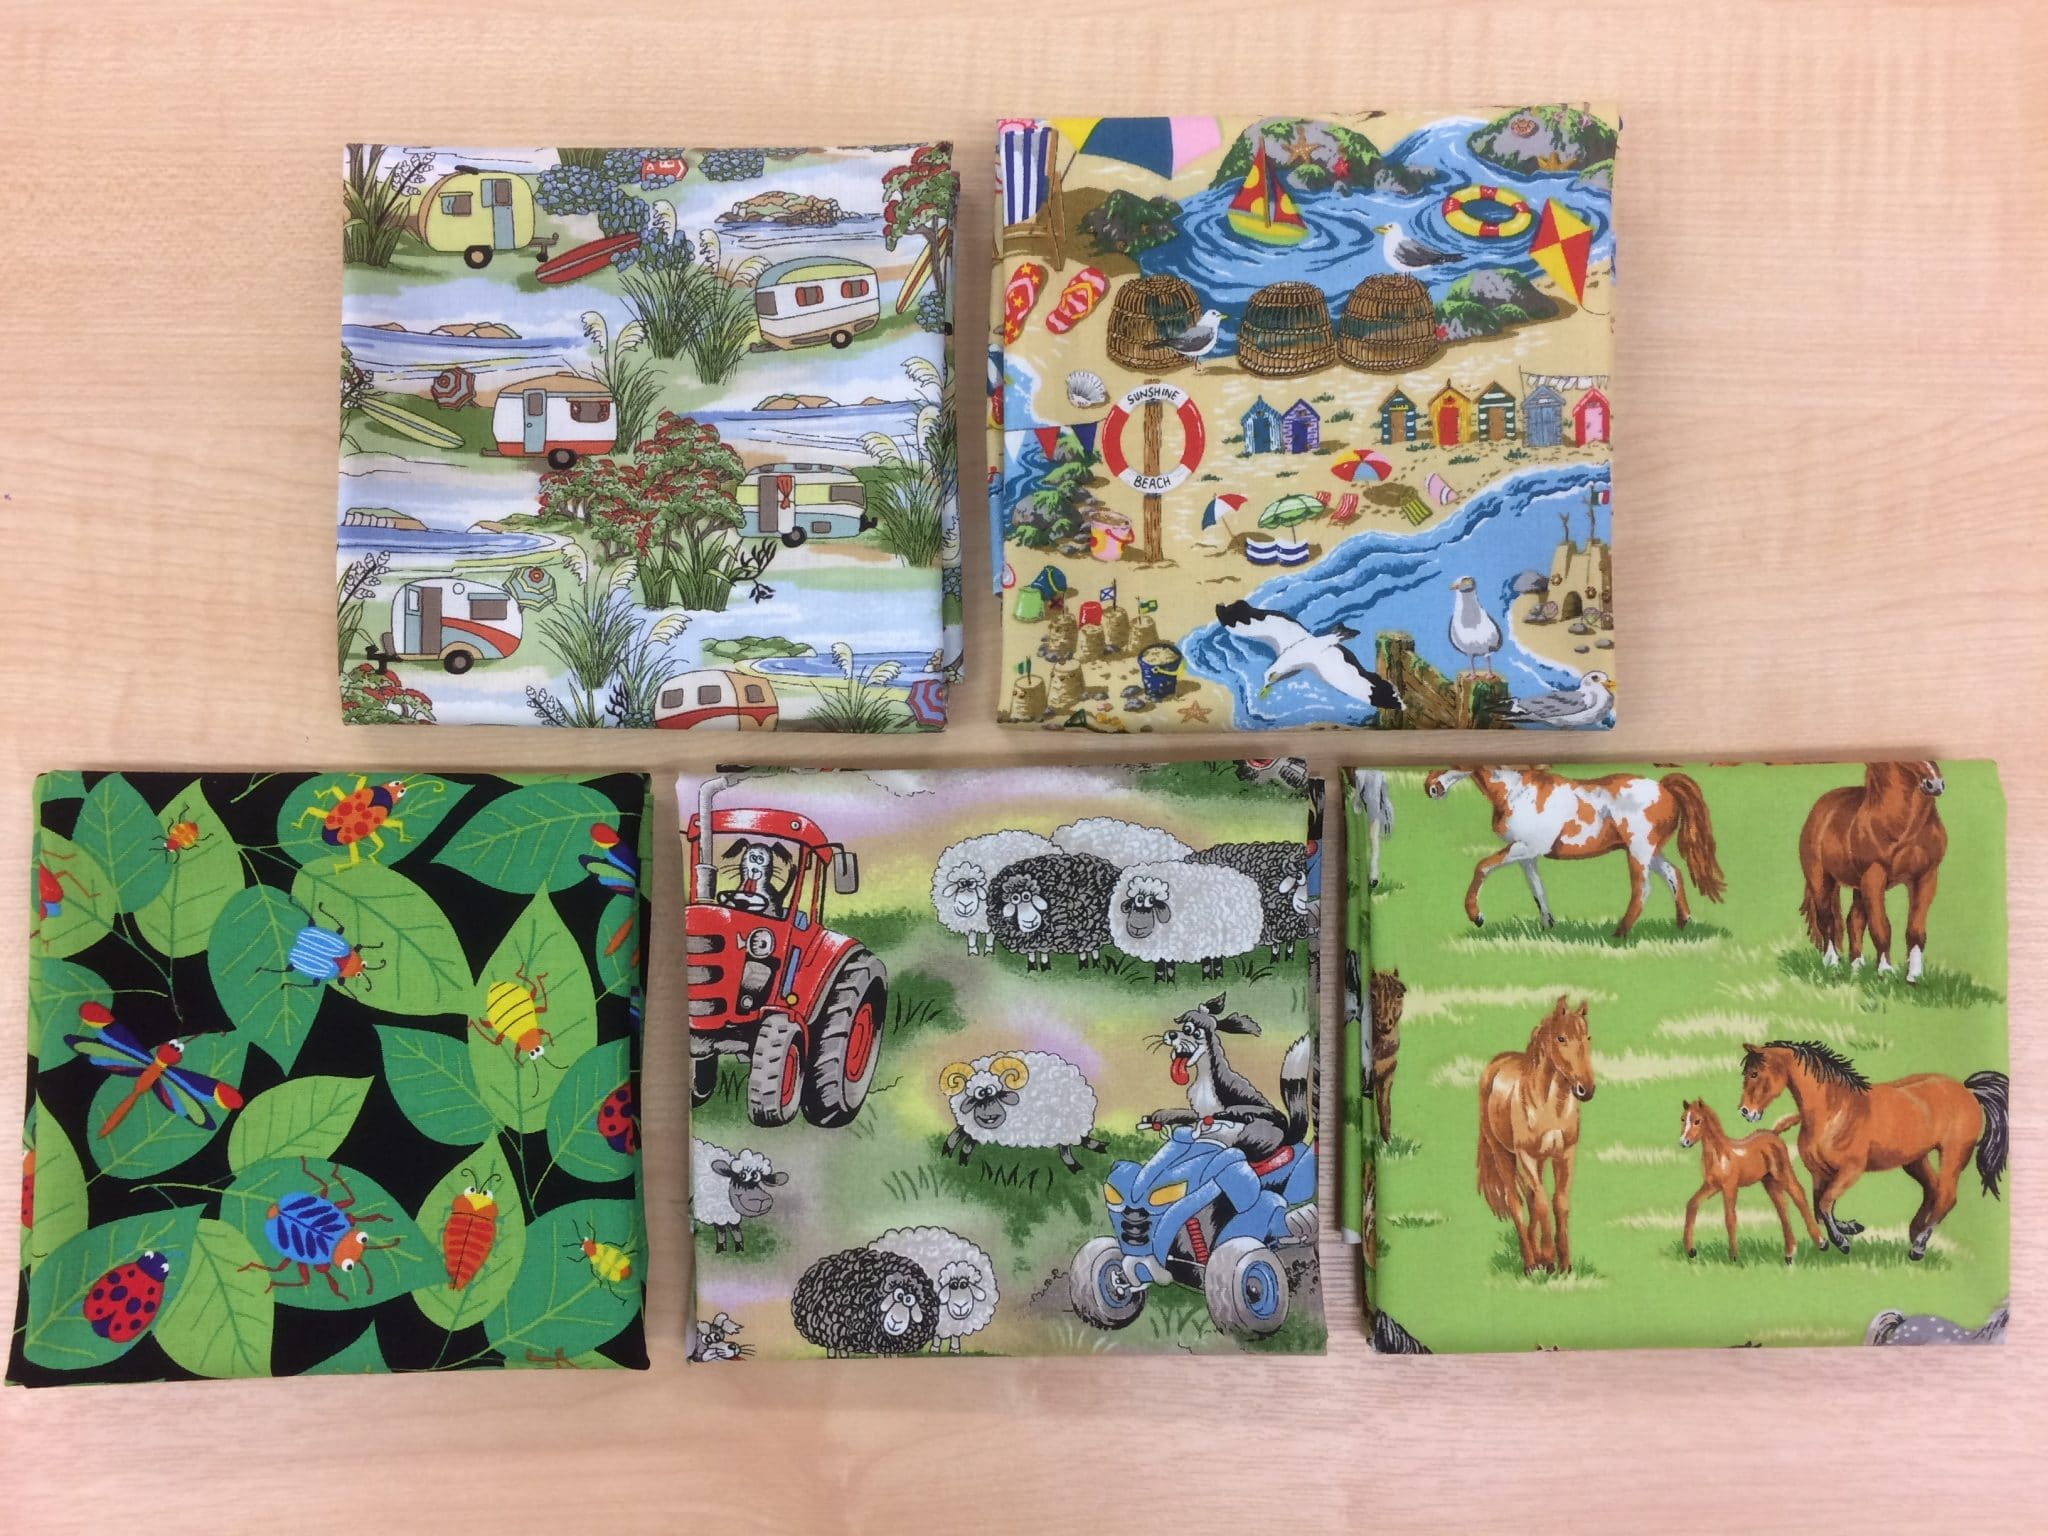 'Retro Caravans', 'The Beach', 'In the Country', Bugs and Critters', and Field Days collections from Nutex